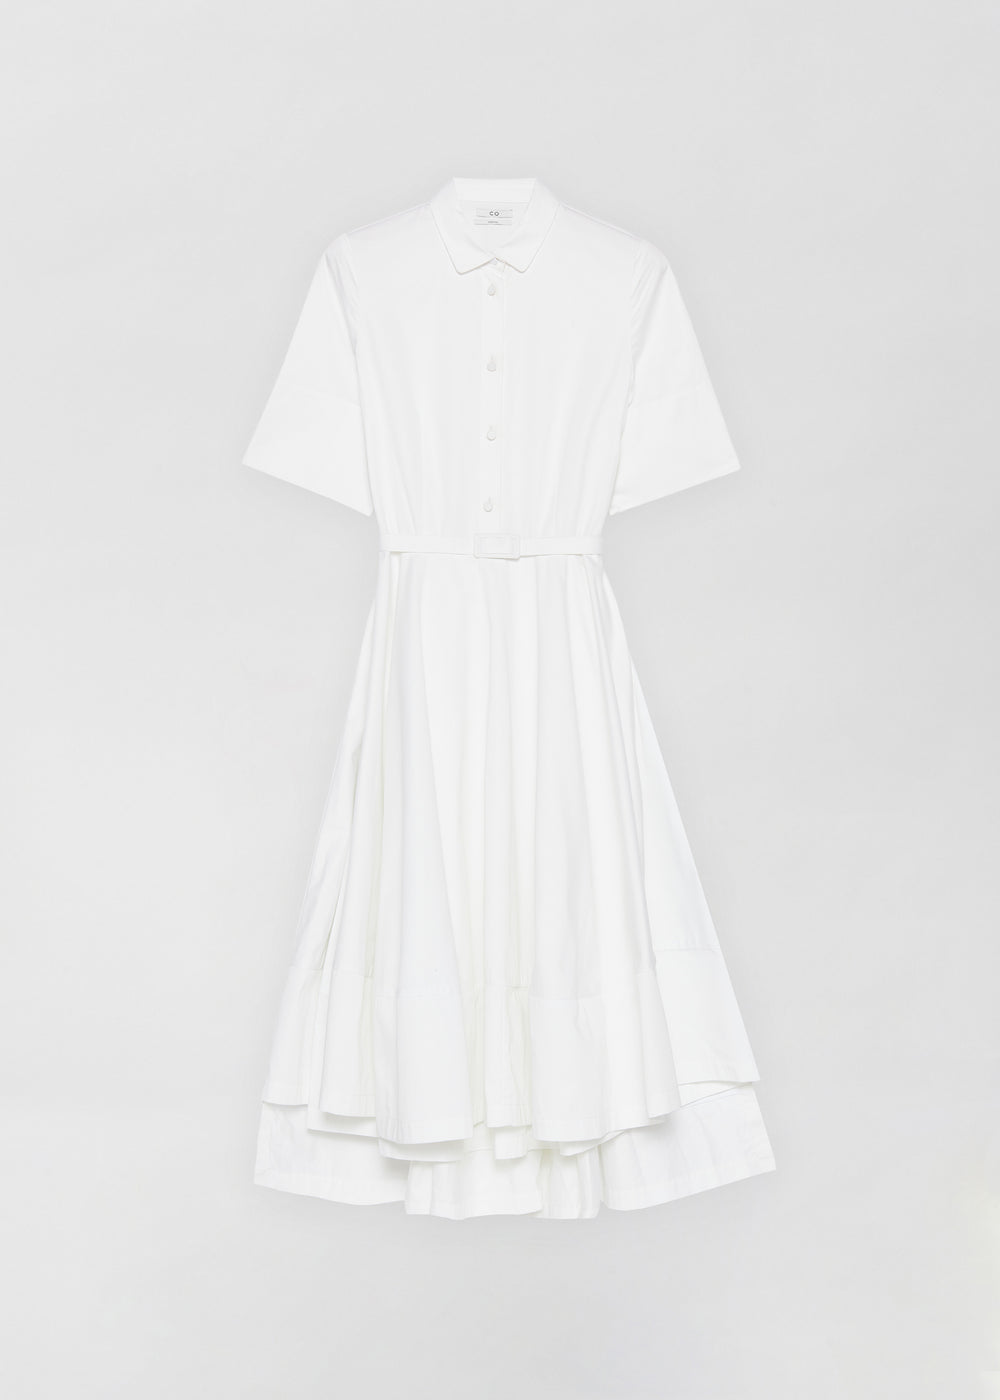 Short Sleeve Flared Dress in Cotton Poplin- Taupe in White by Co Collections